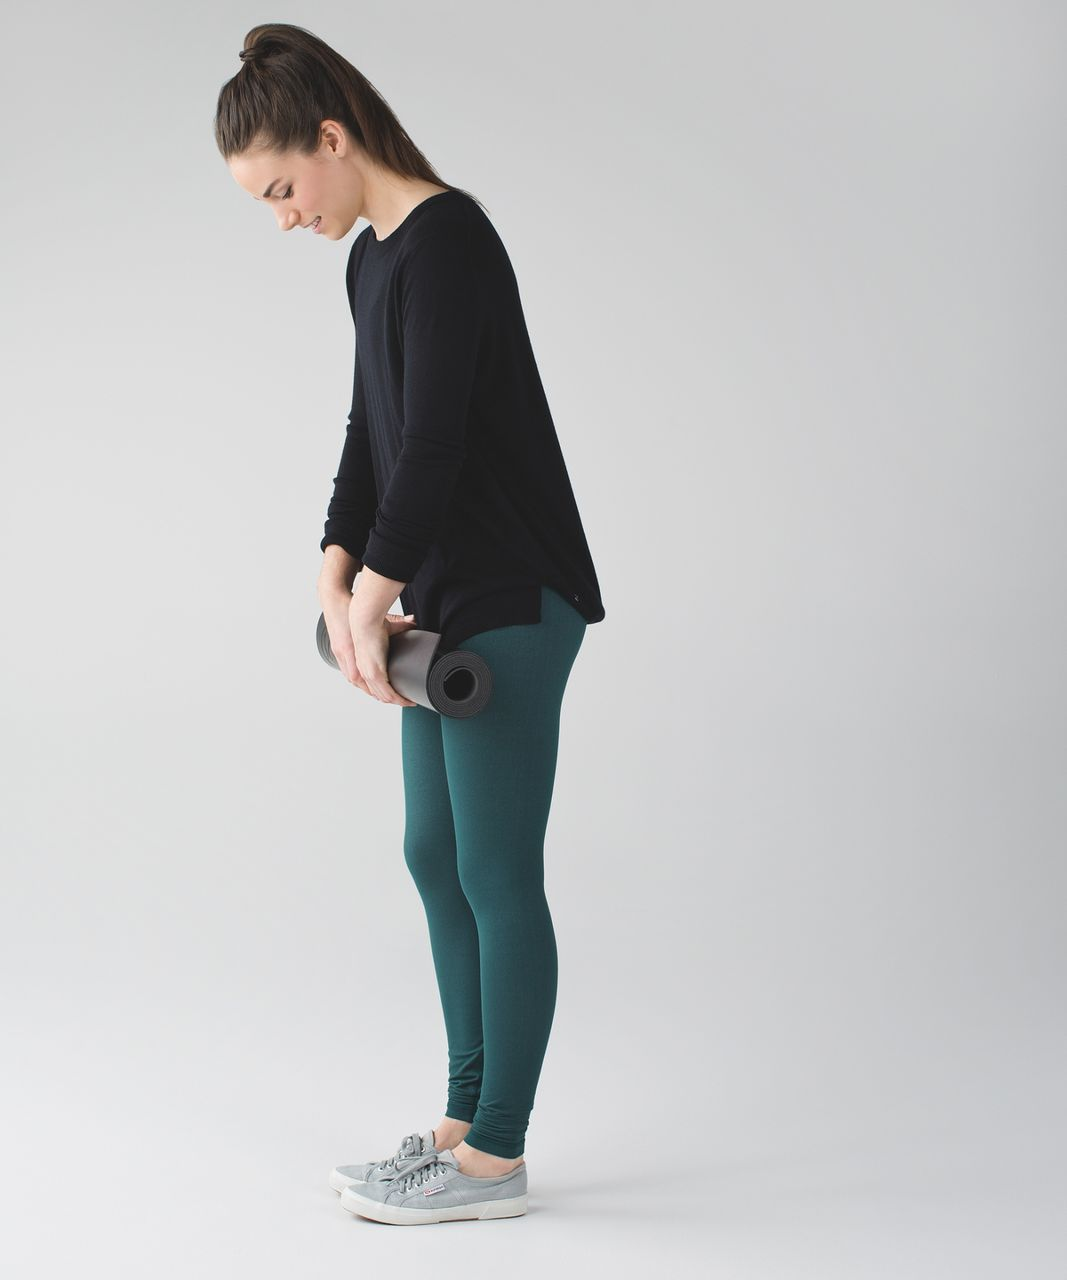 Lululemon Wunder Under Pant III - Deep Green